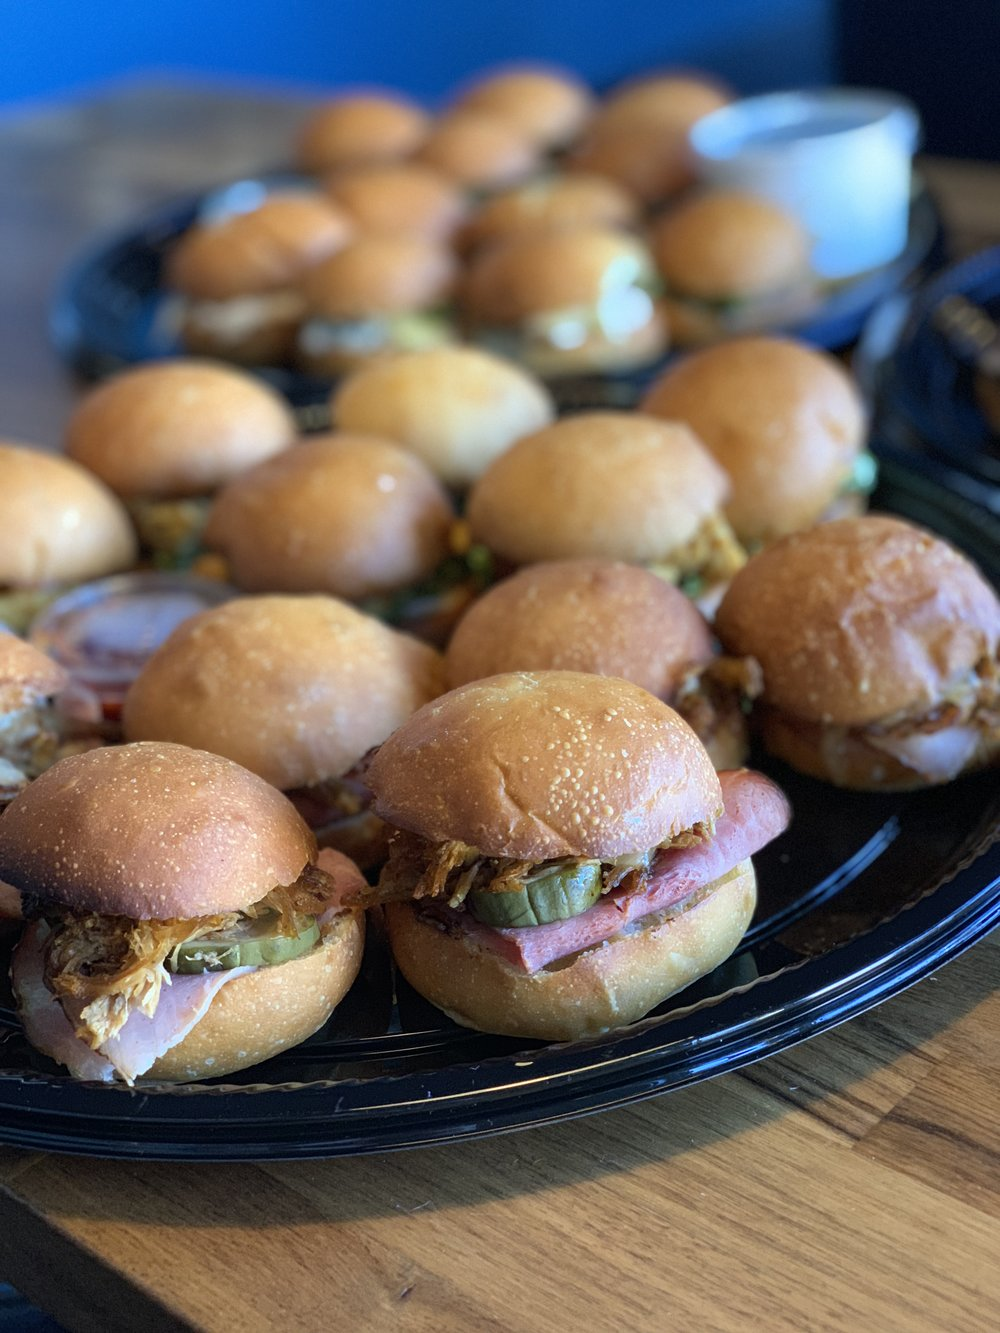 CATERING - We cater events and corporate/office lunches. Please call 206-686-3254 or email uncle@eddiesp.com to arrange your order .We look forward to working with you!